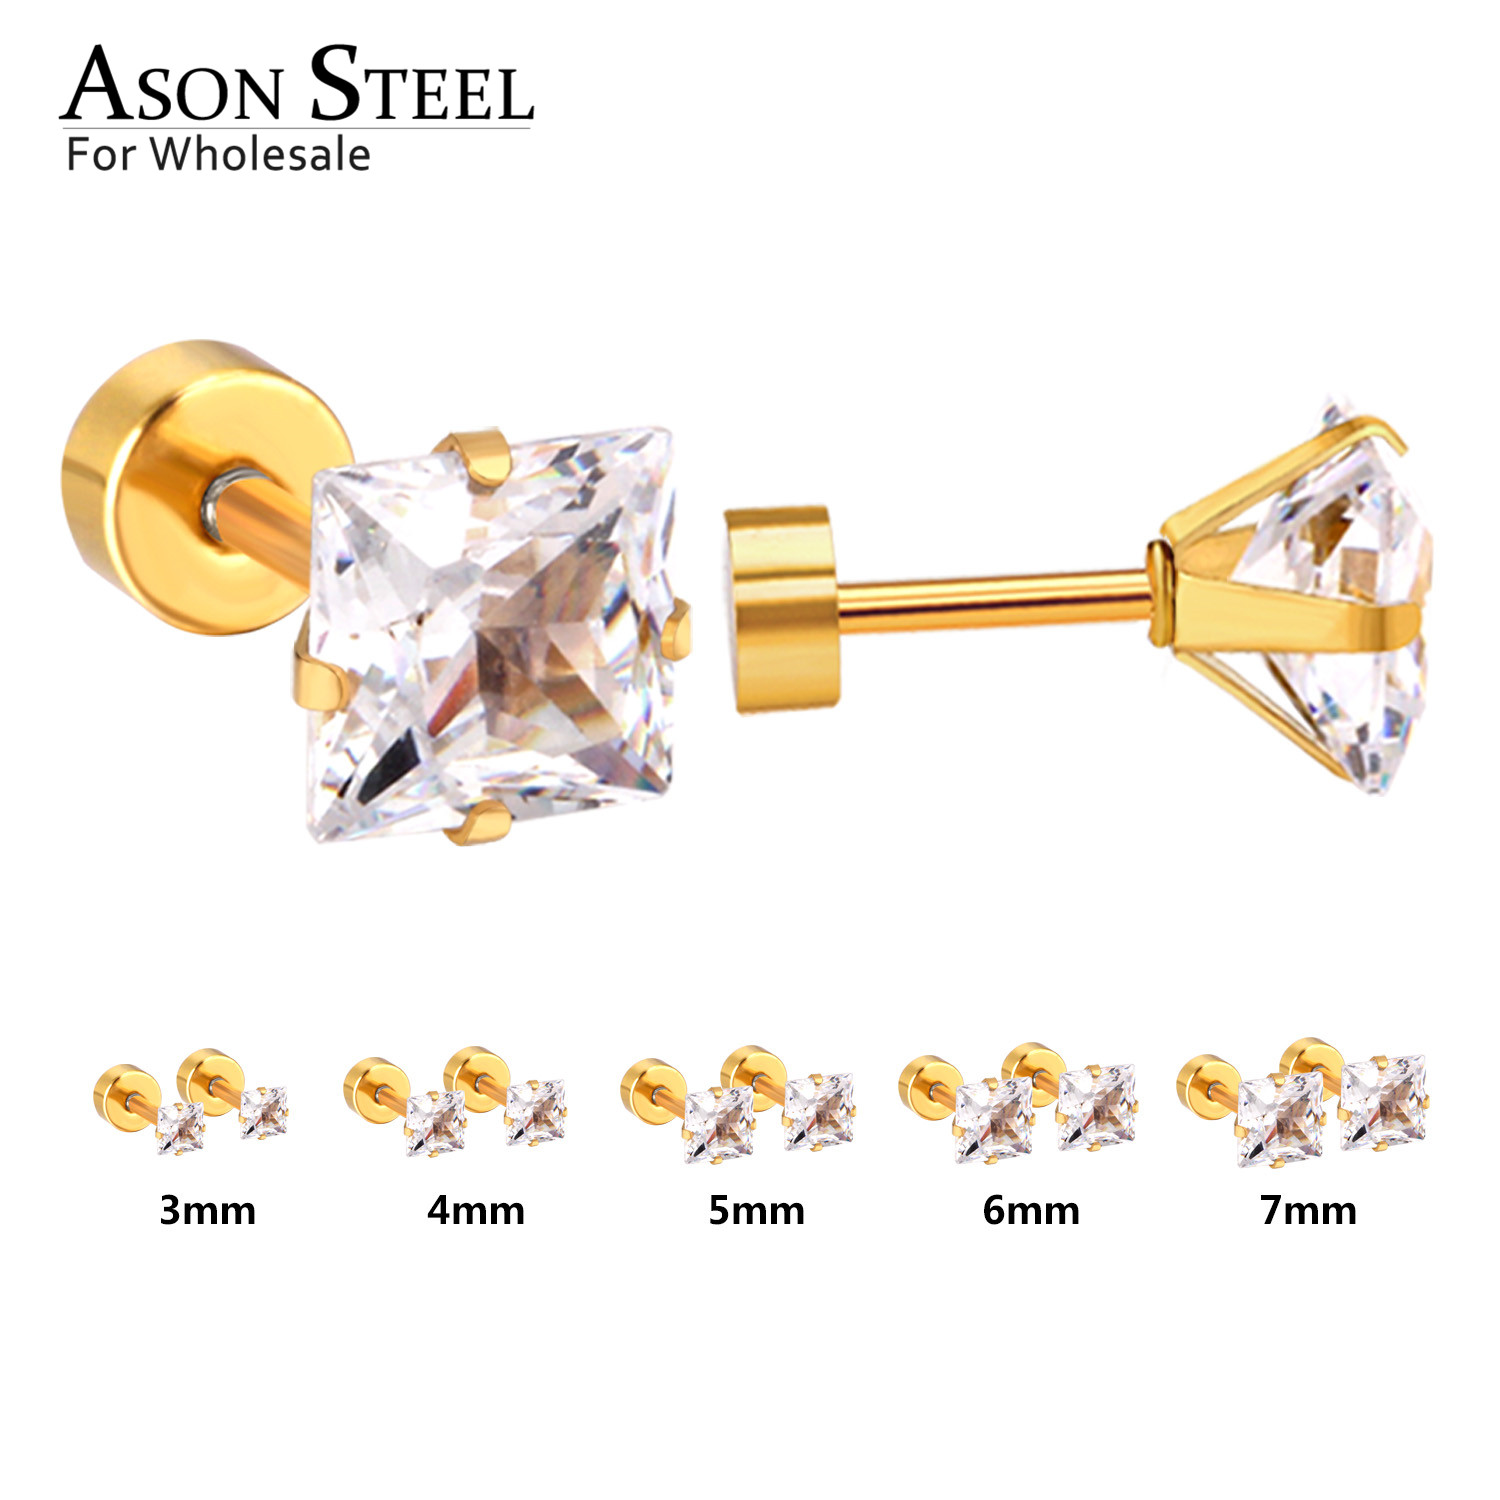 ASONSTEEL 5Pairs Square Cubic Zircnia Earring Sets Mixed Size 3mm to 7mm Stainless Steel Earrings for Women Anti-allergy Jewelry